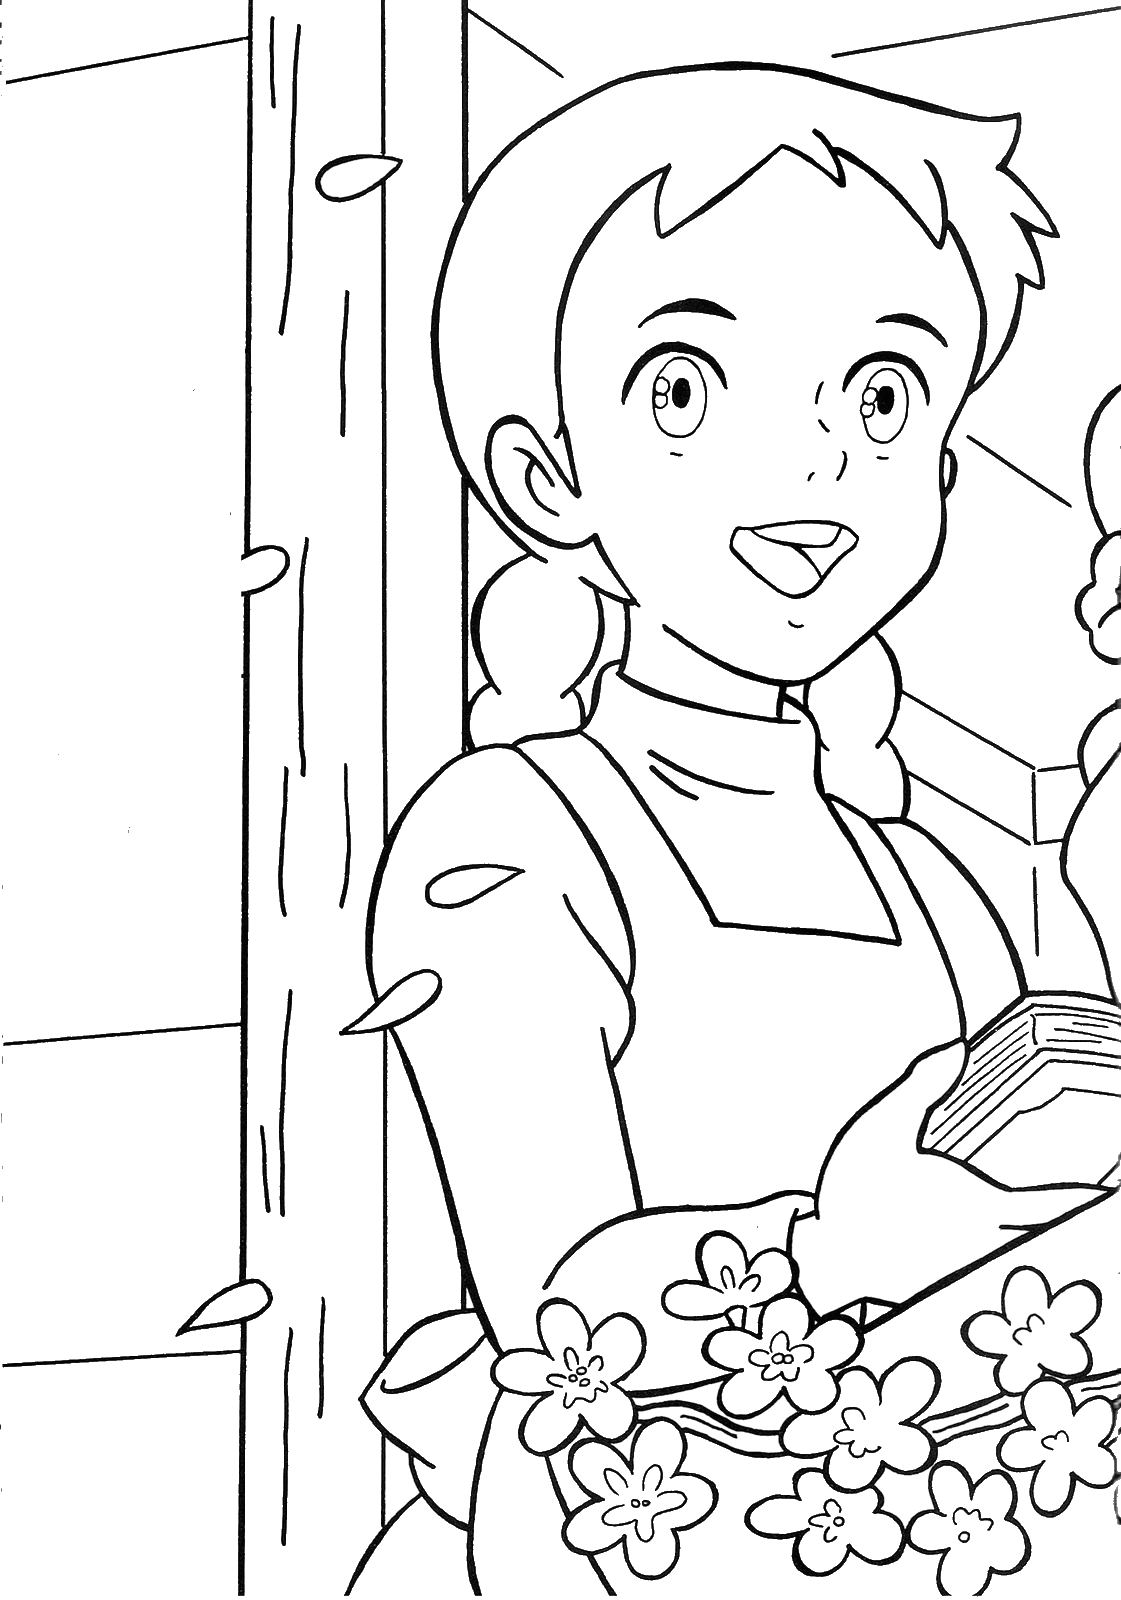 Anne Of Green Gables Coloring Pages Free Ann Of Green Gables Coloring Pages